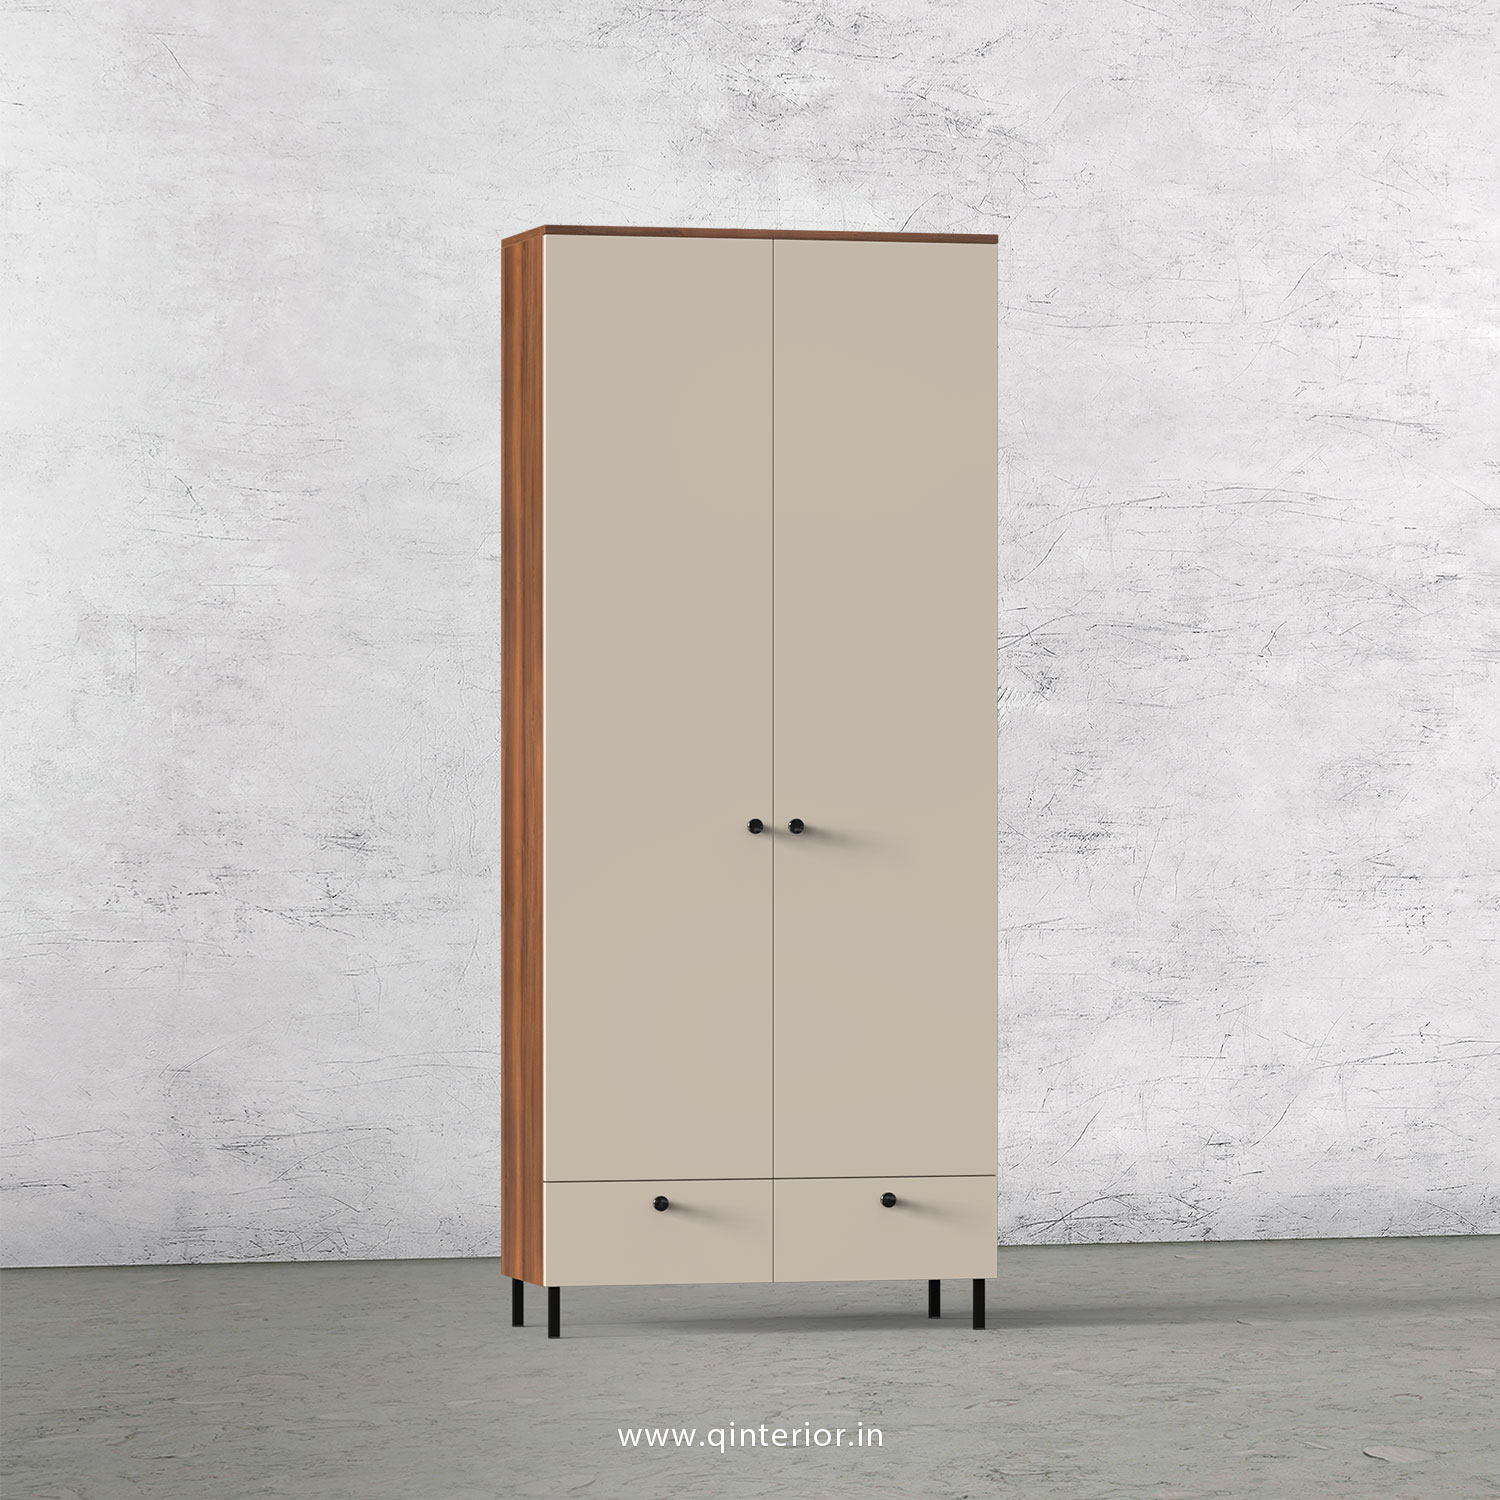 Lambent 2 Door Wardrobe in Teak and Irish Cream Finish – DWRD002 C11